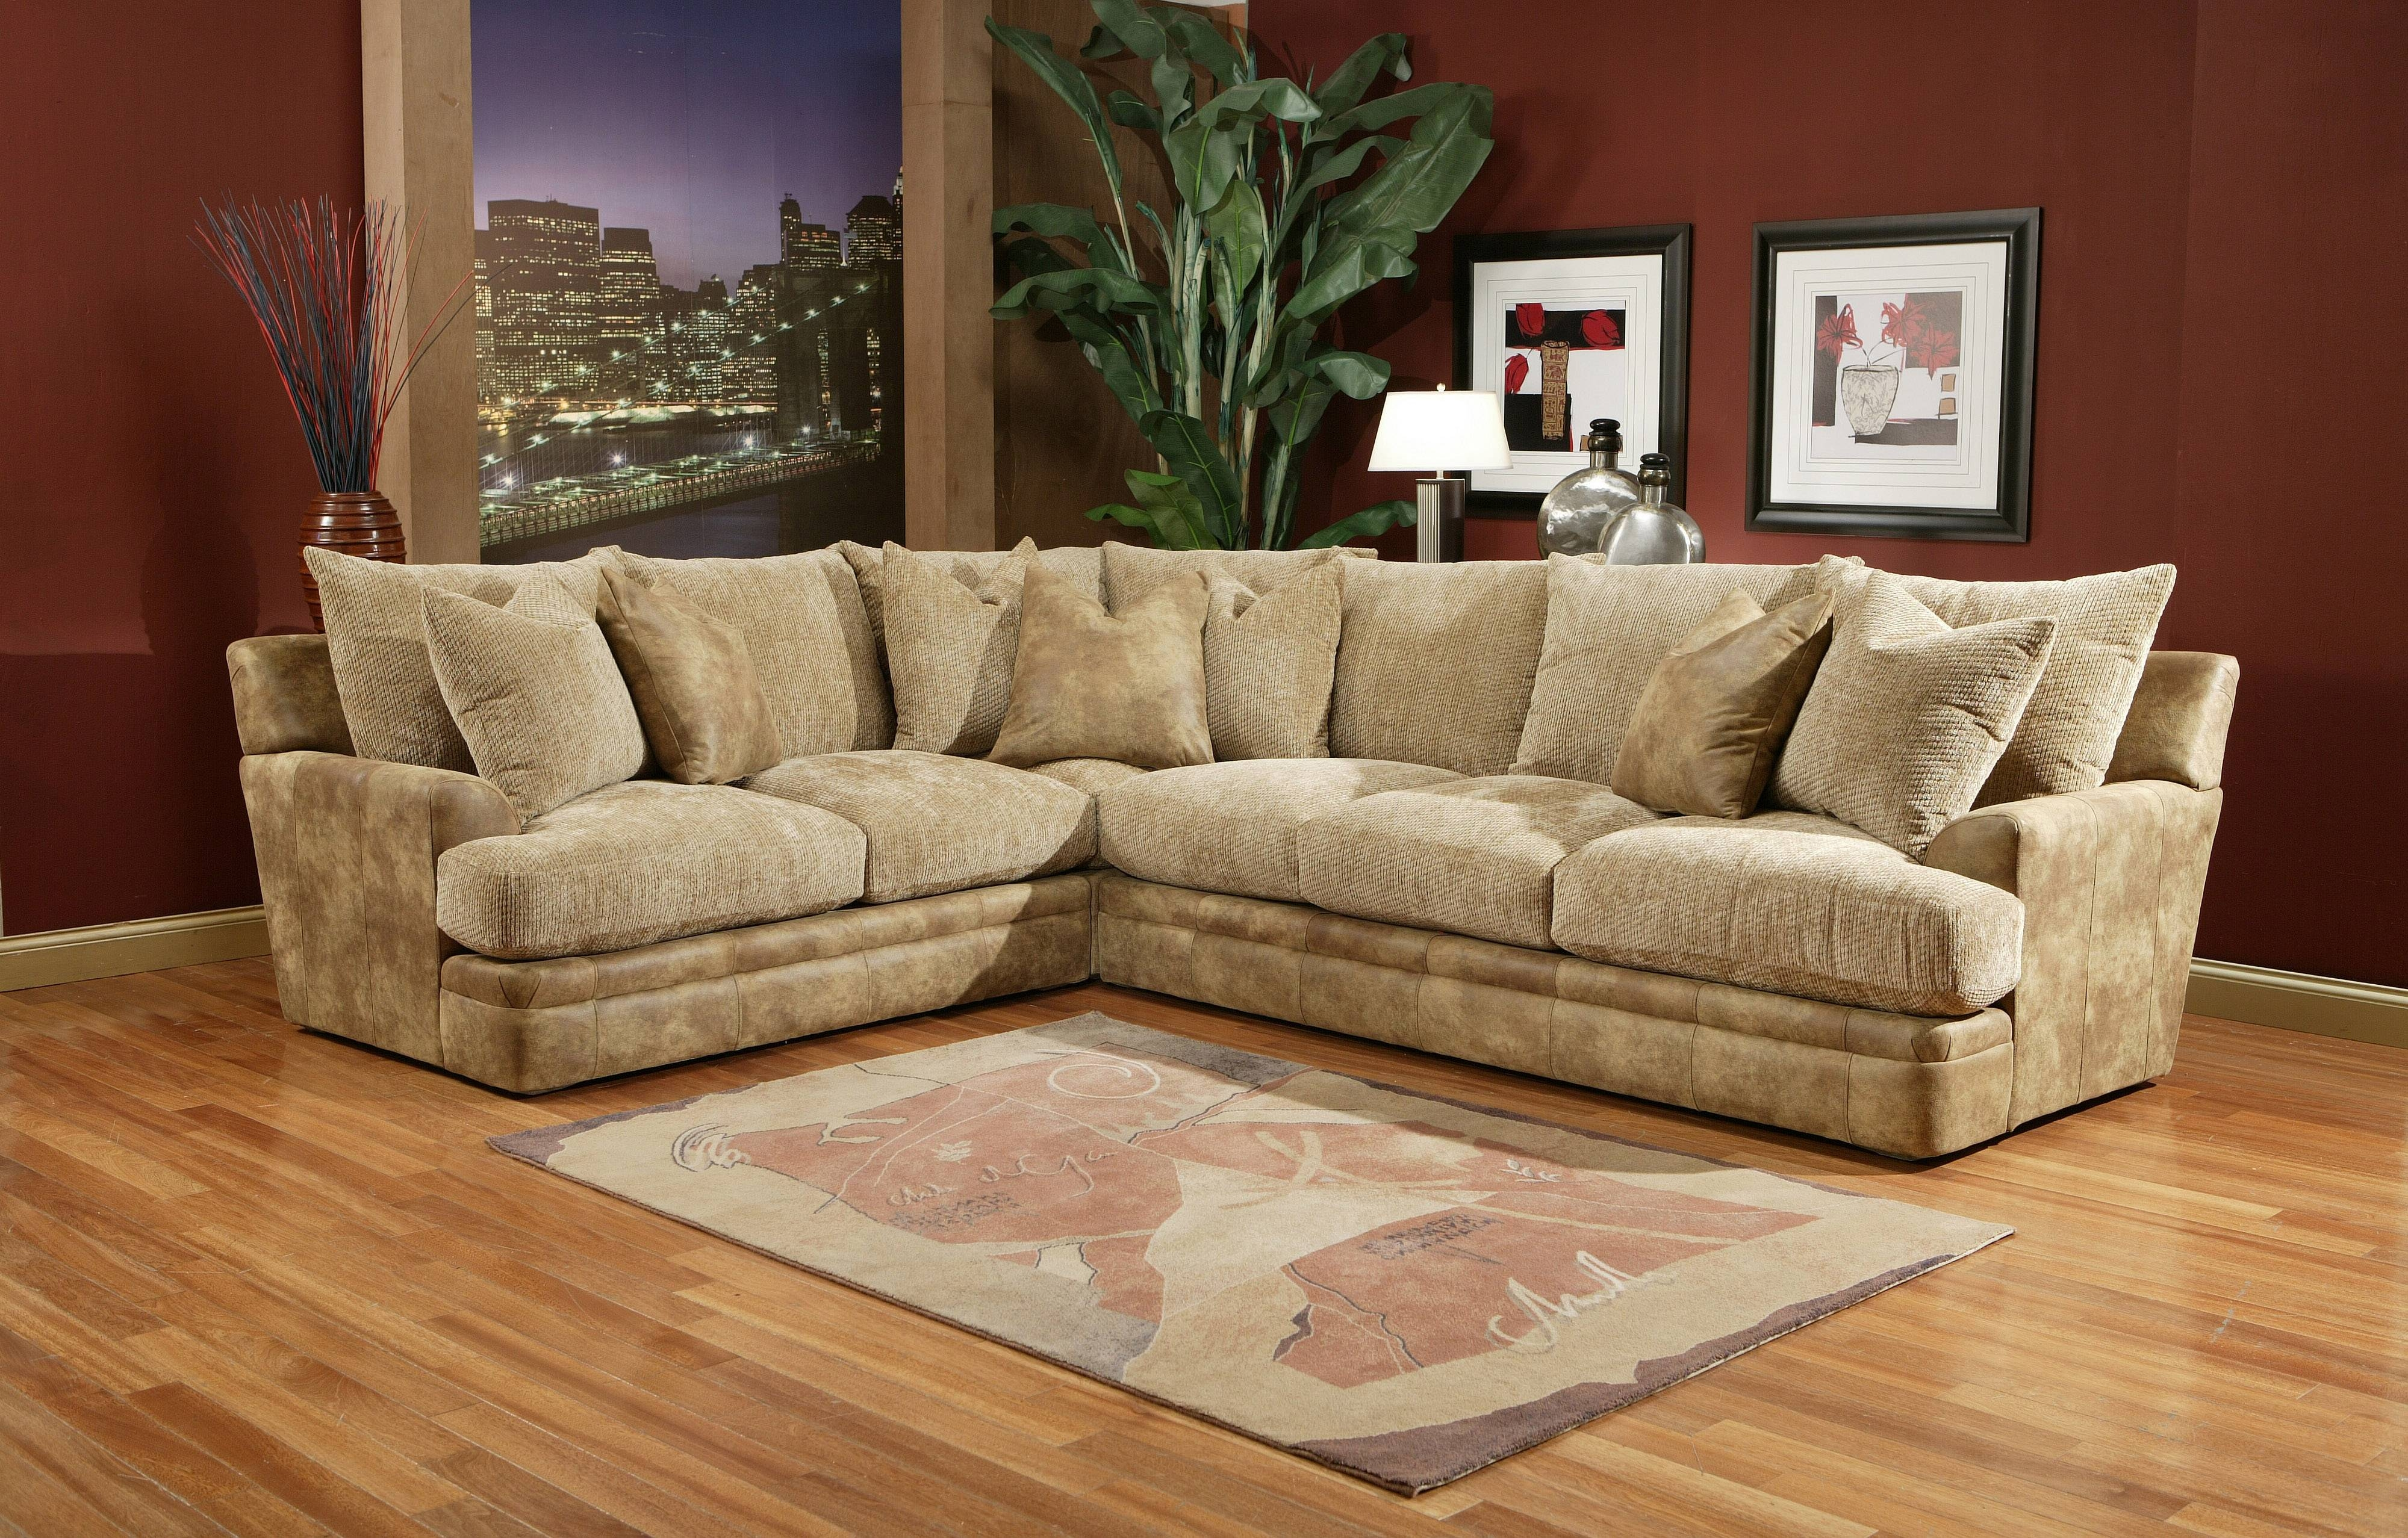 Shelter Island Sofa Sectional, Robert Michael Furniture regarding Down Filled Sofas and Sectionals (Image 16 of 30)